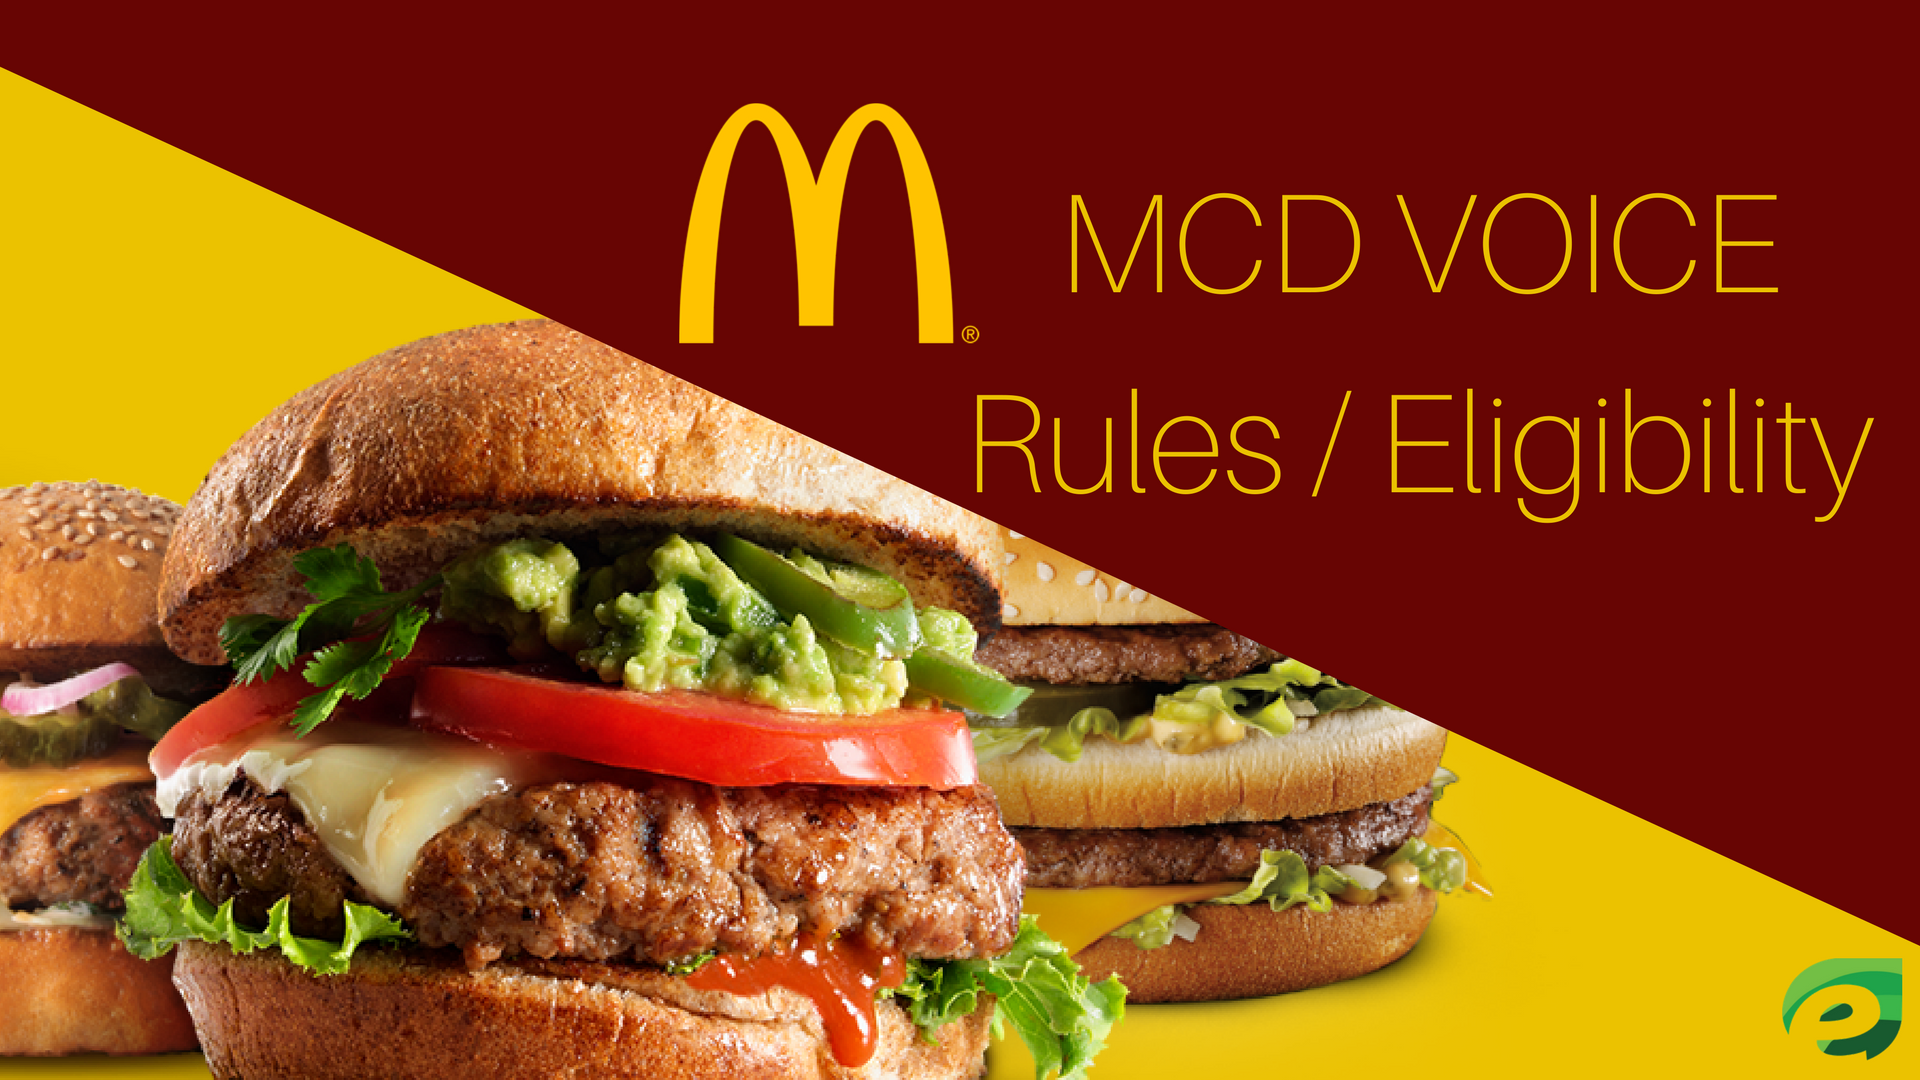 www.mcdvoice.com - rules / eligibility